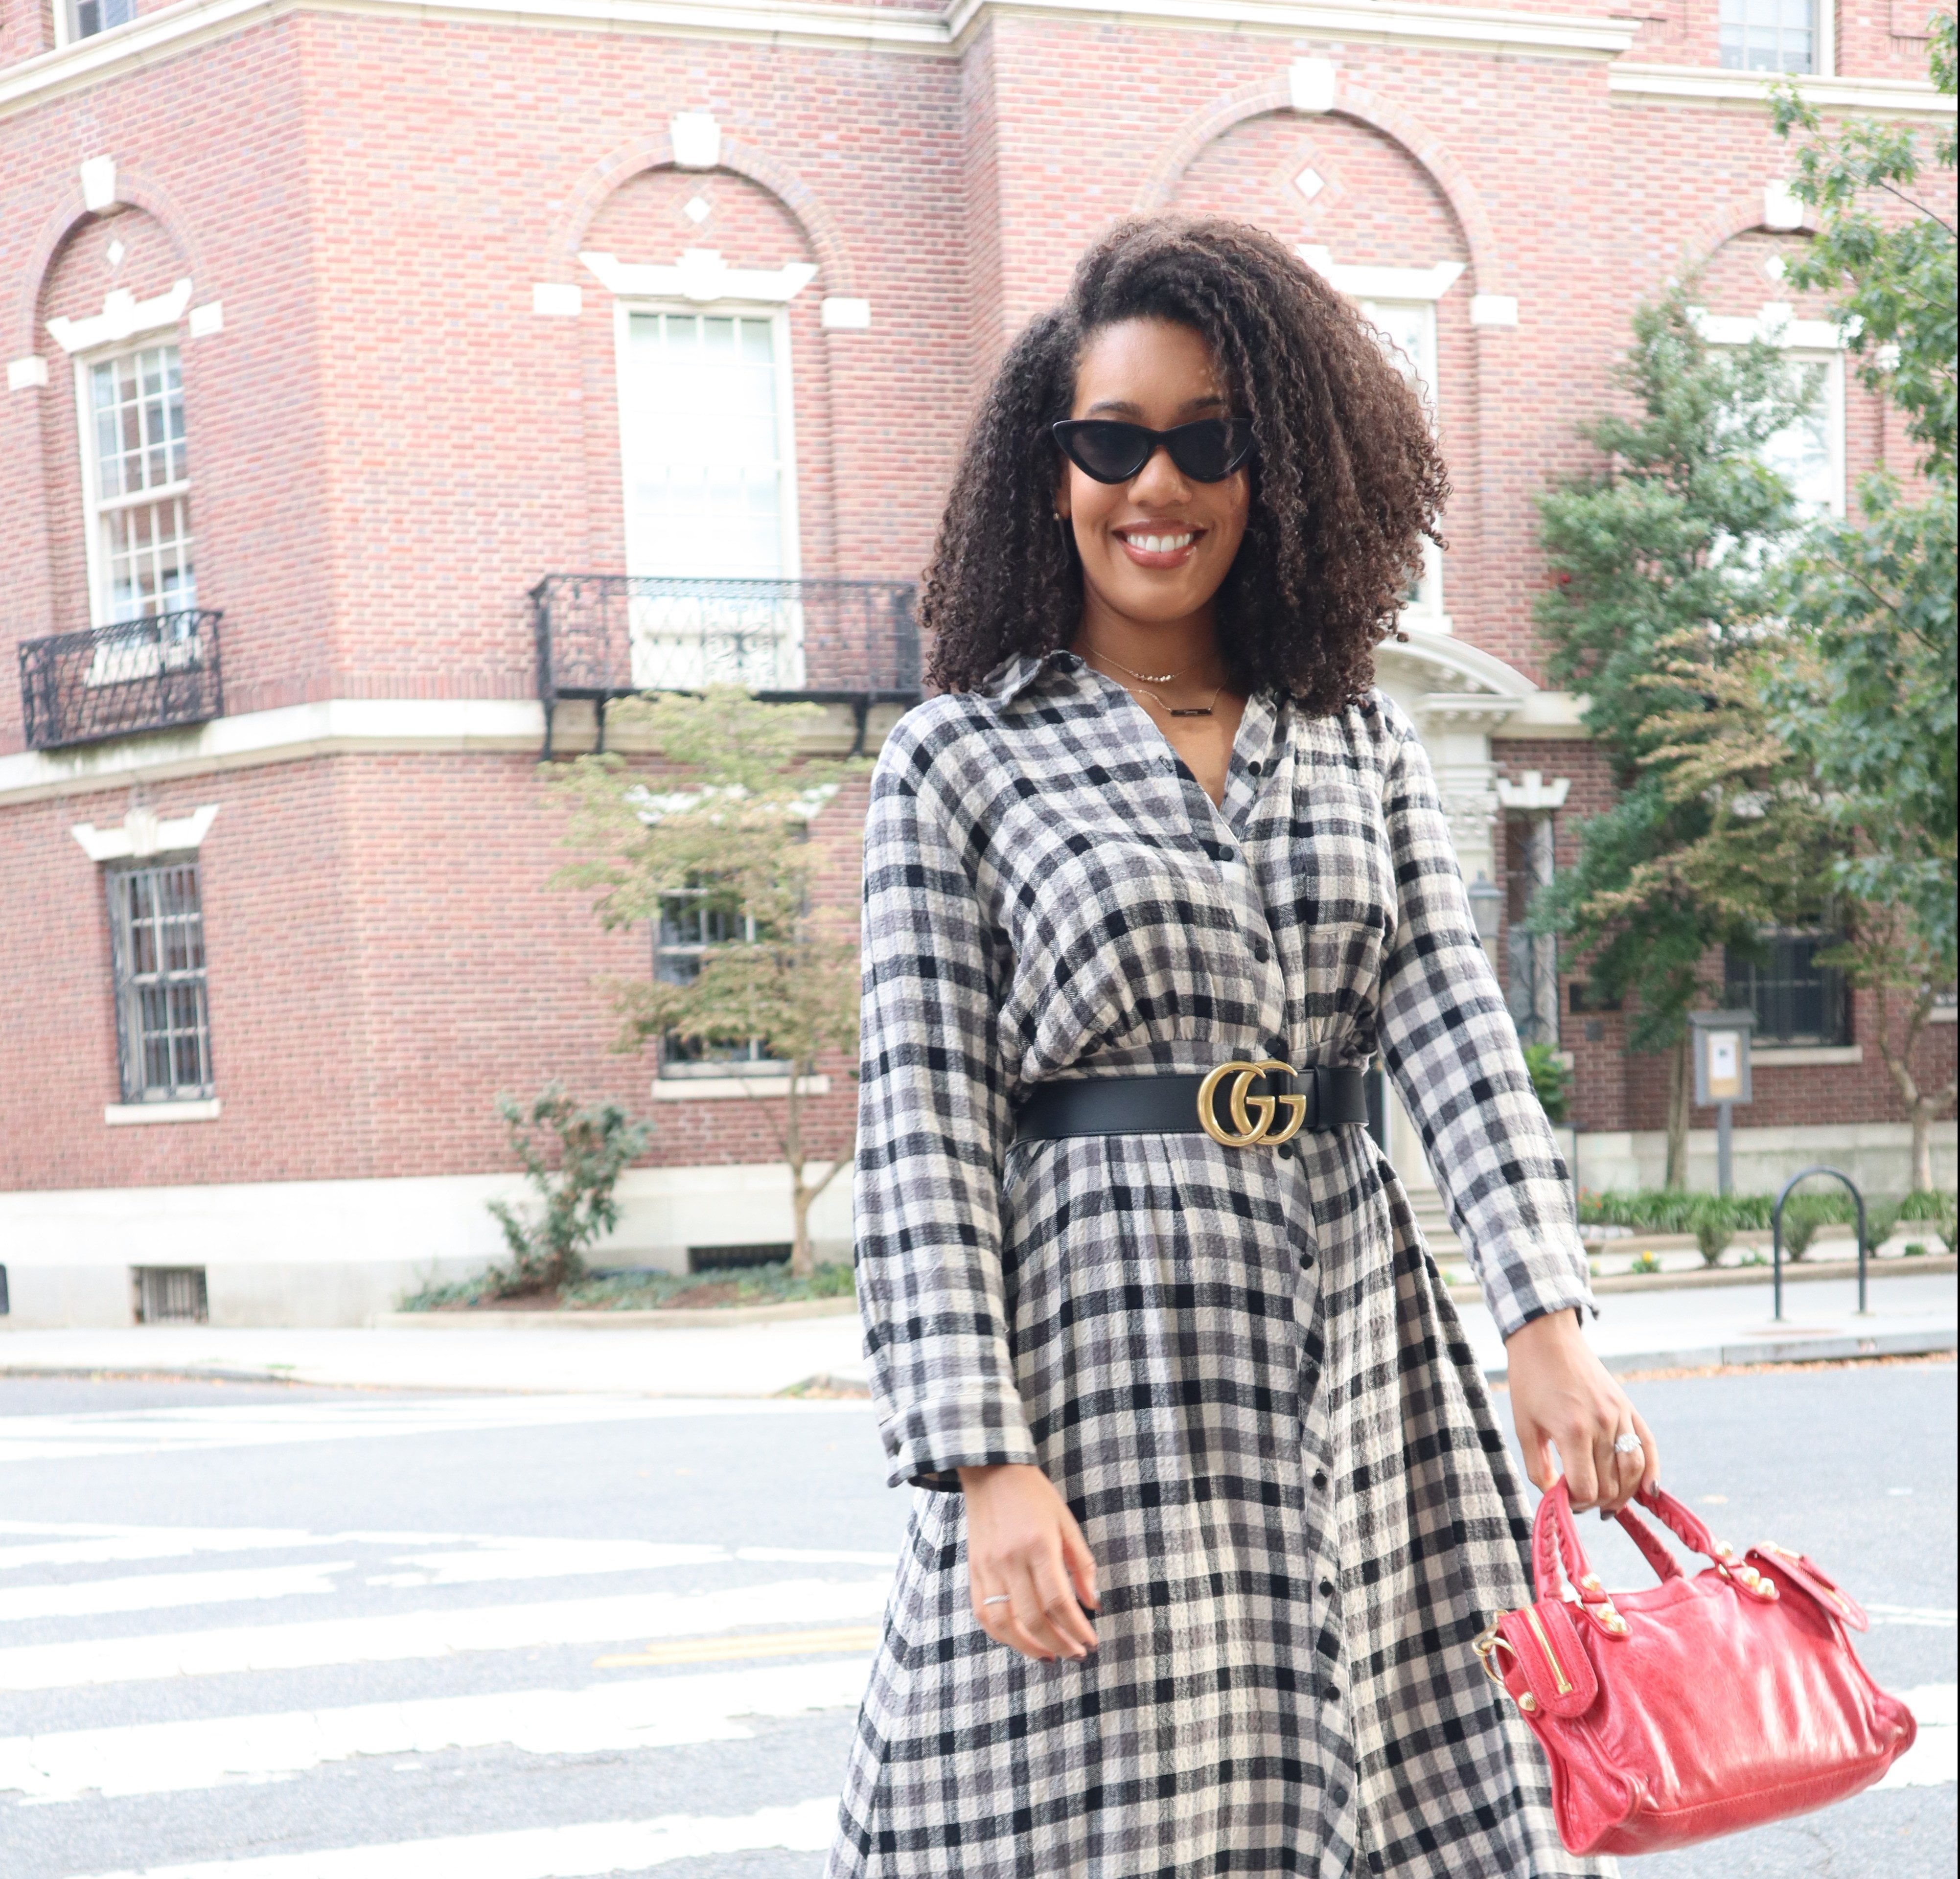 girl in gucci belt, red purse, checkered dress